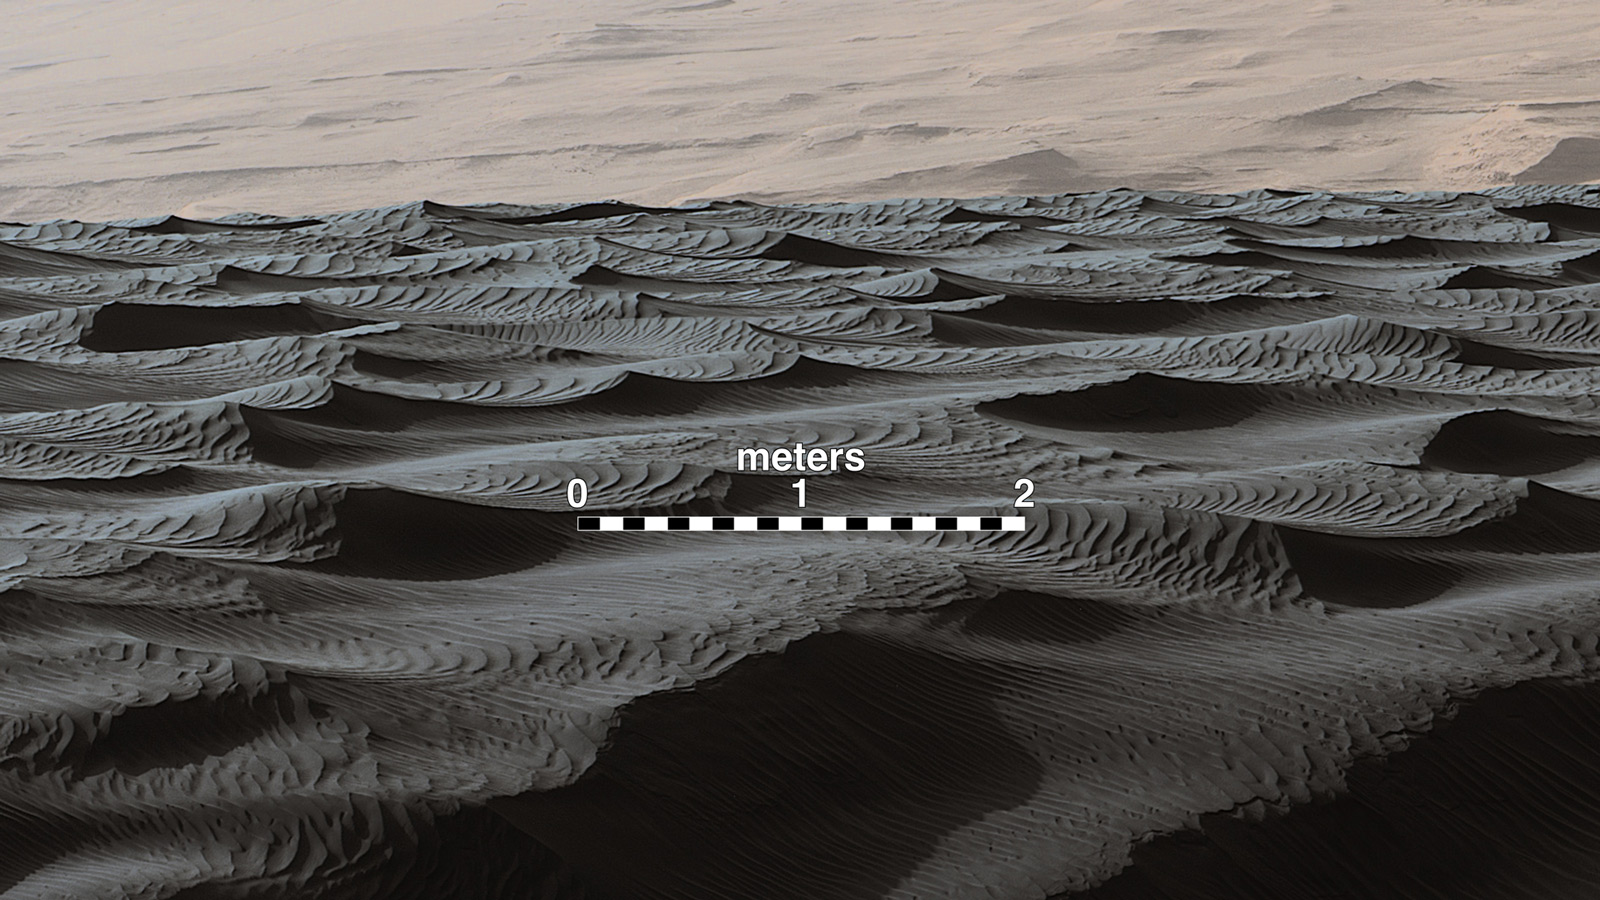 Image of Sand Dunes on Mars: Endurance Craters are dramatic dune fields on the crater floor. Dune crests have accumulated more dust than the flanks of the dunes and the flat surfaces between the dunes.